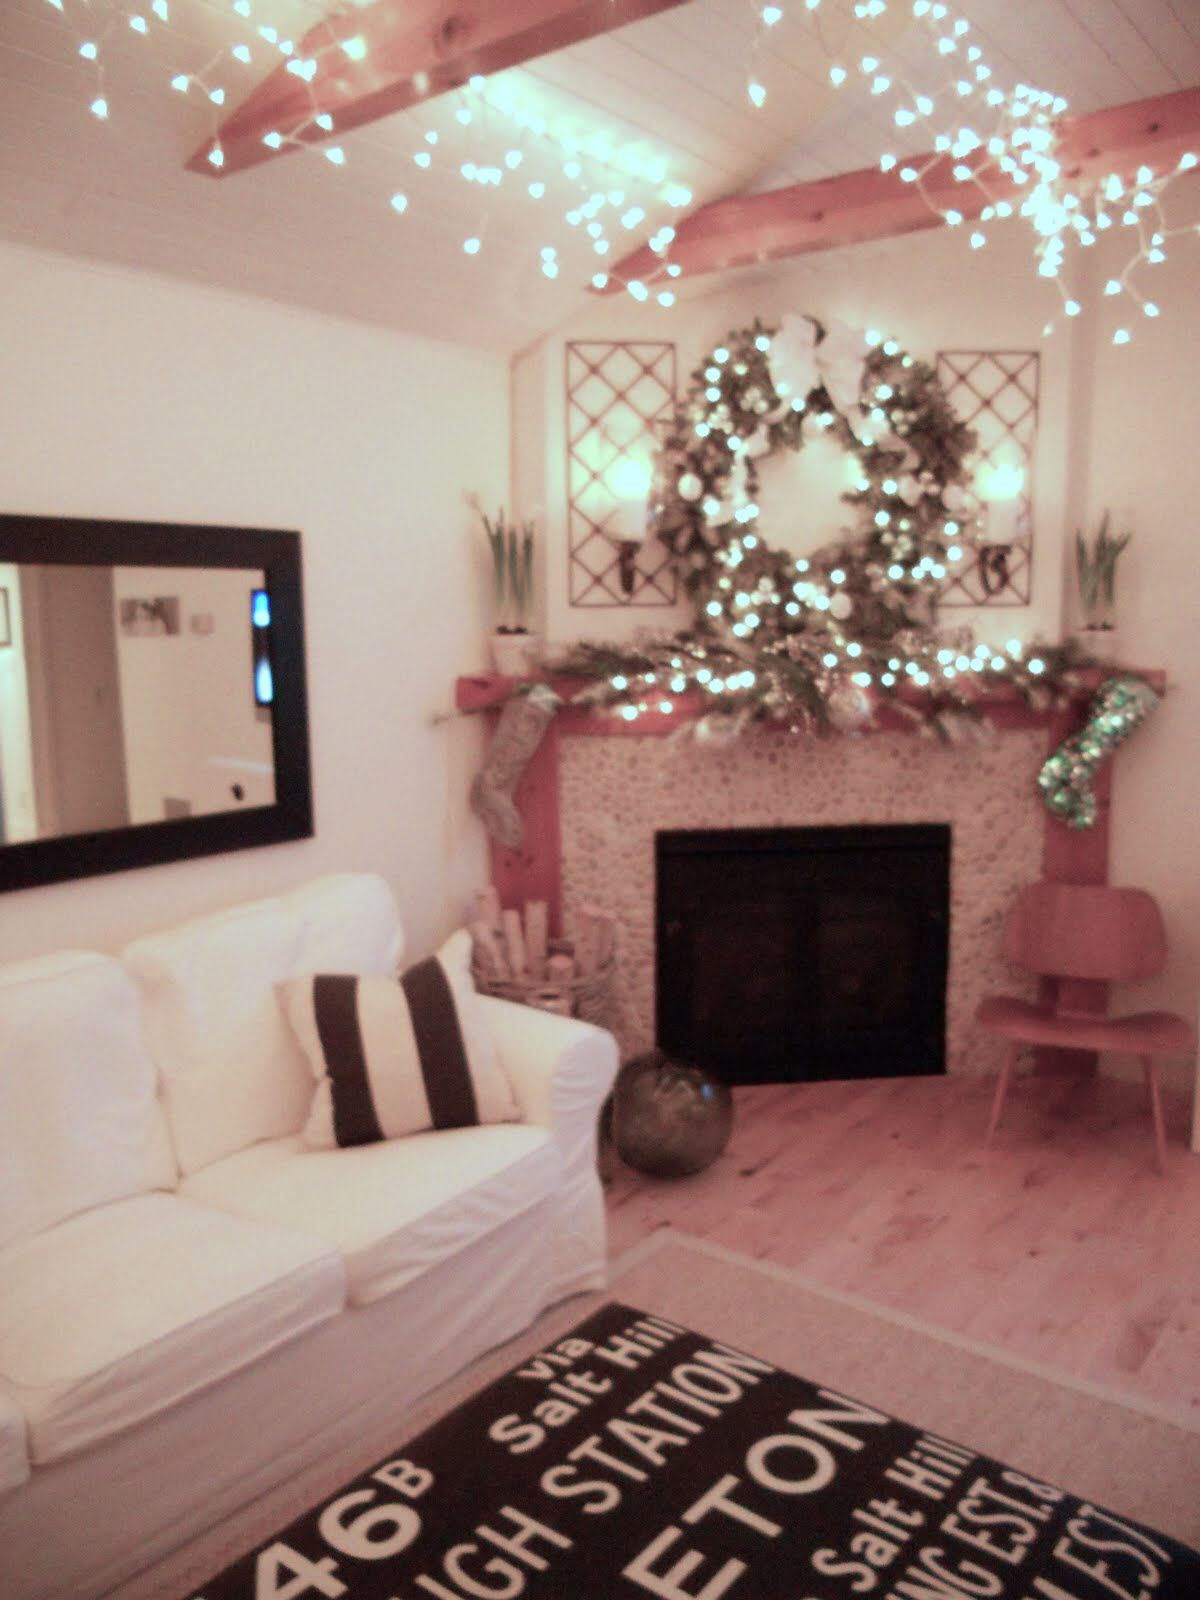 Living Room Christmas House Decorations Inside.Pin By Charity Zollman On Holiday Creativity Christmas